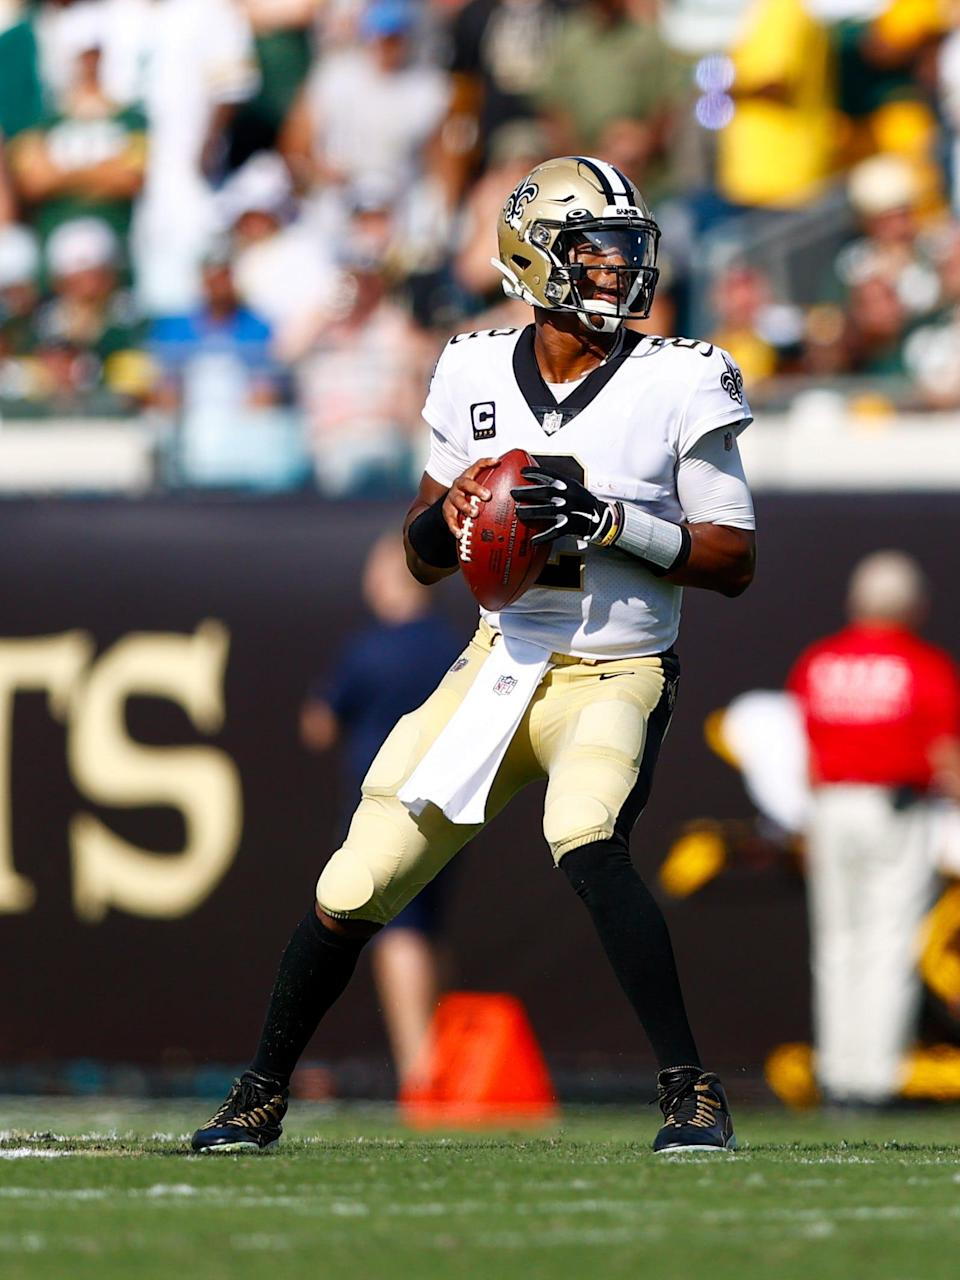 Saints quarterback Jameis Winston had a career-high 5 TD passes against the Packers.